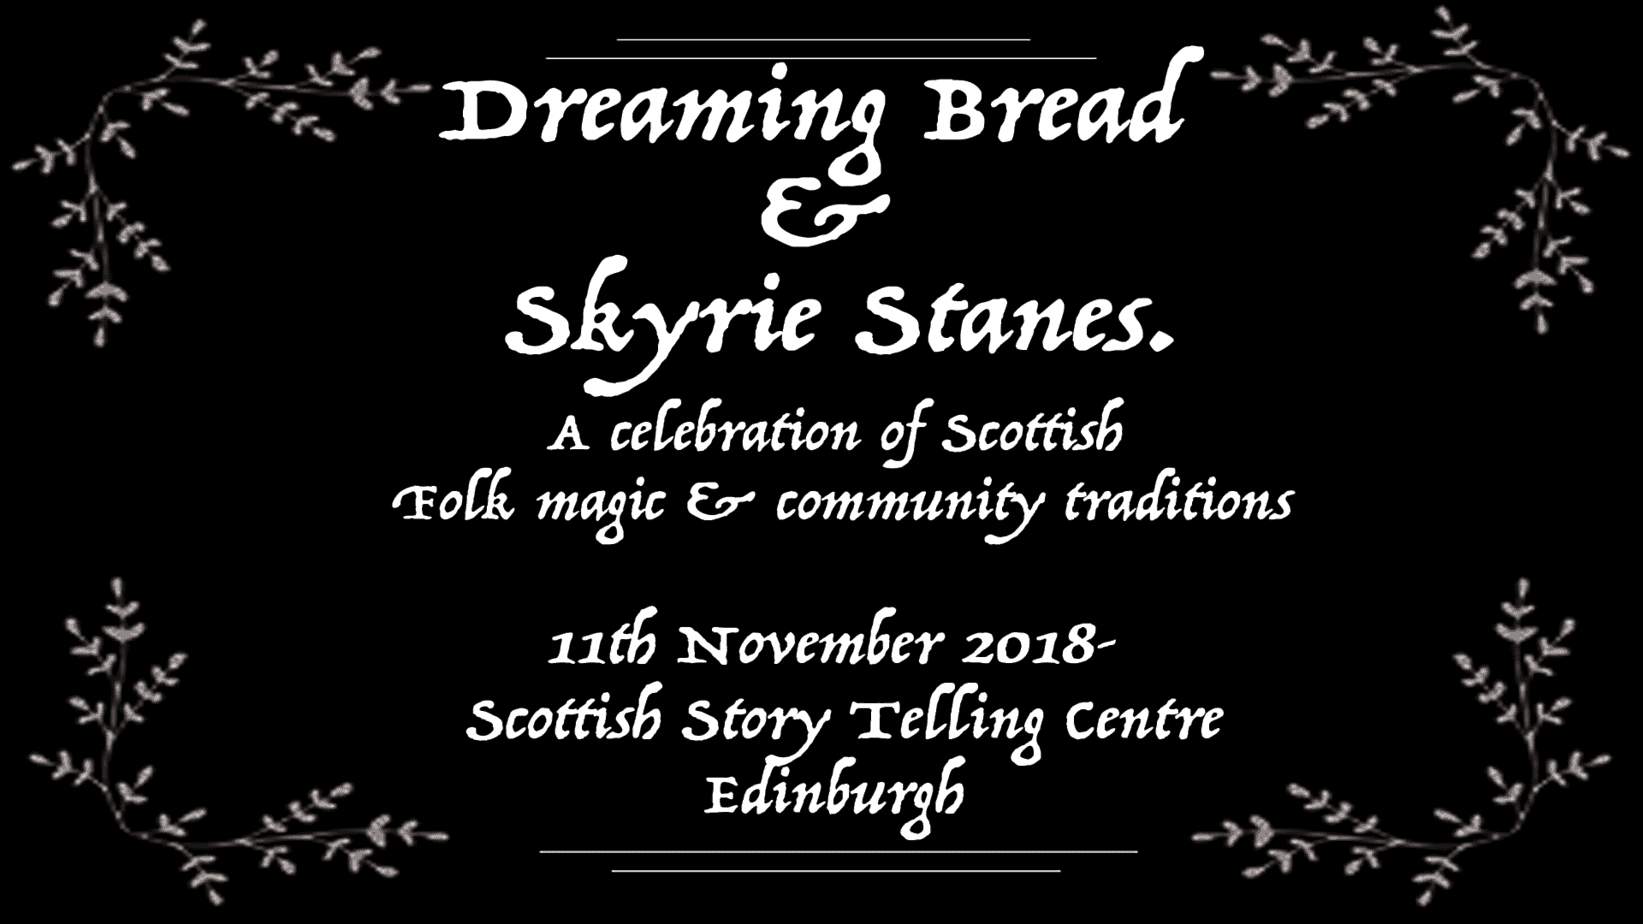 Come to the launch event for the Tales of The Taibhsear spoken word album - 11th November 2018.